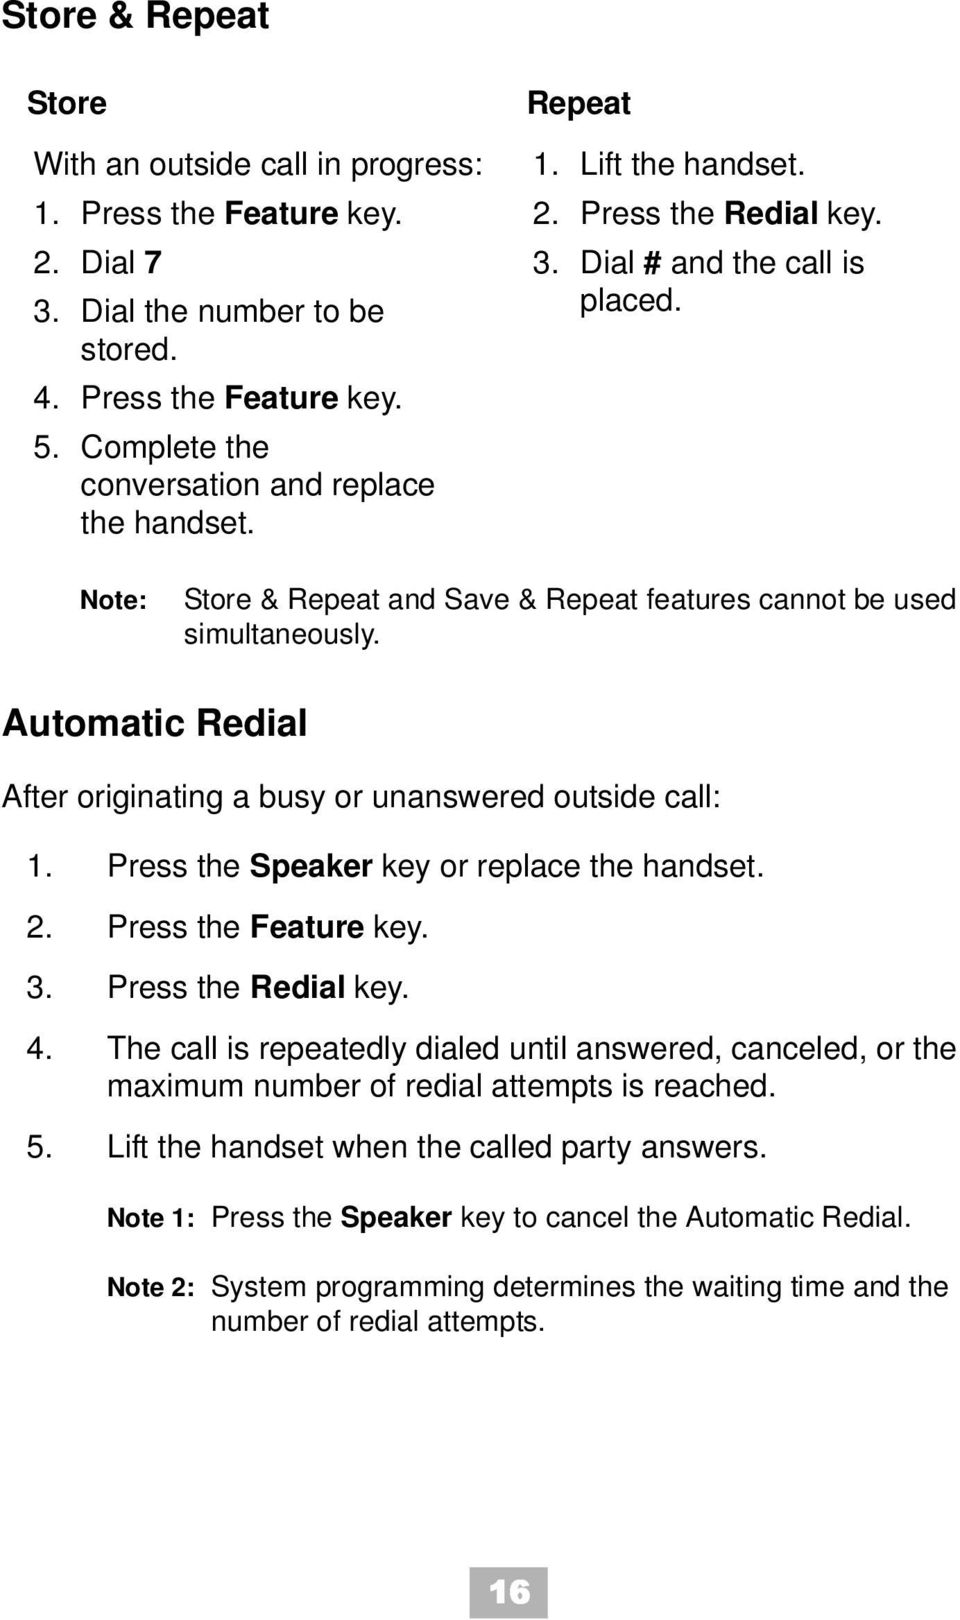 Note: Store & Repeat and Save & Repeat features cannot be used simultaneously. Automatic Redial After originating a busy or unanswered outside call: 1. Press the Speaker key or replace the handset. 2.